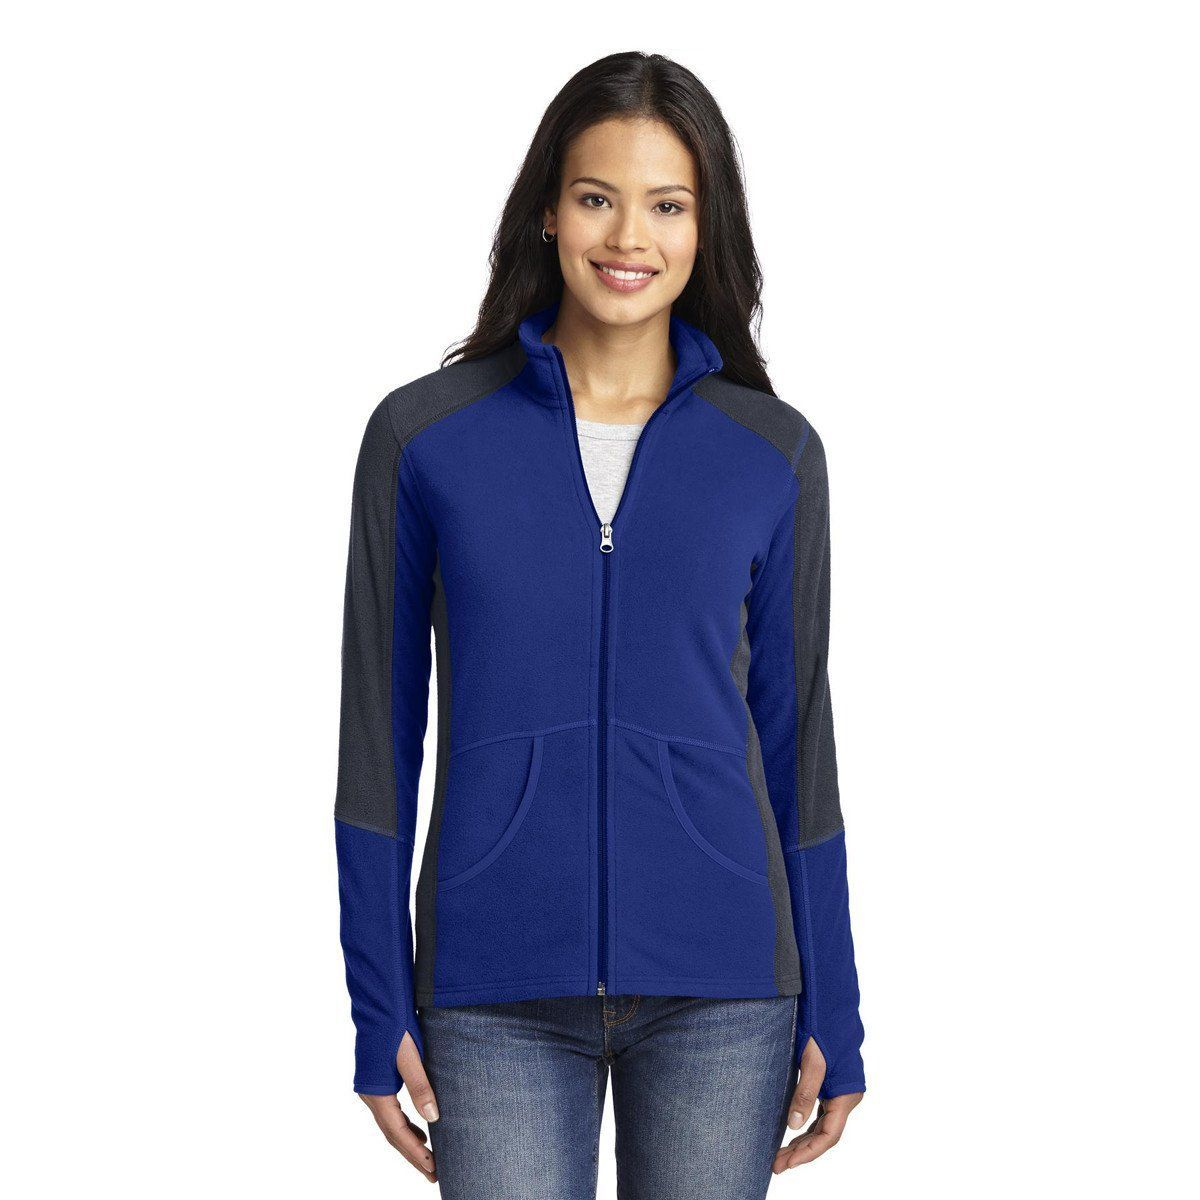 b28c8cffa05 Port Authority Women s Patriot Blue Battleship Grey Colorblock Microfleece  Jacket